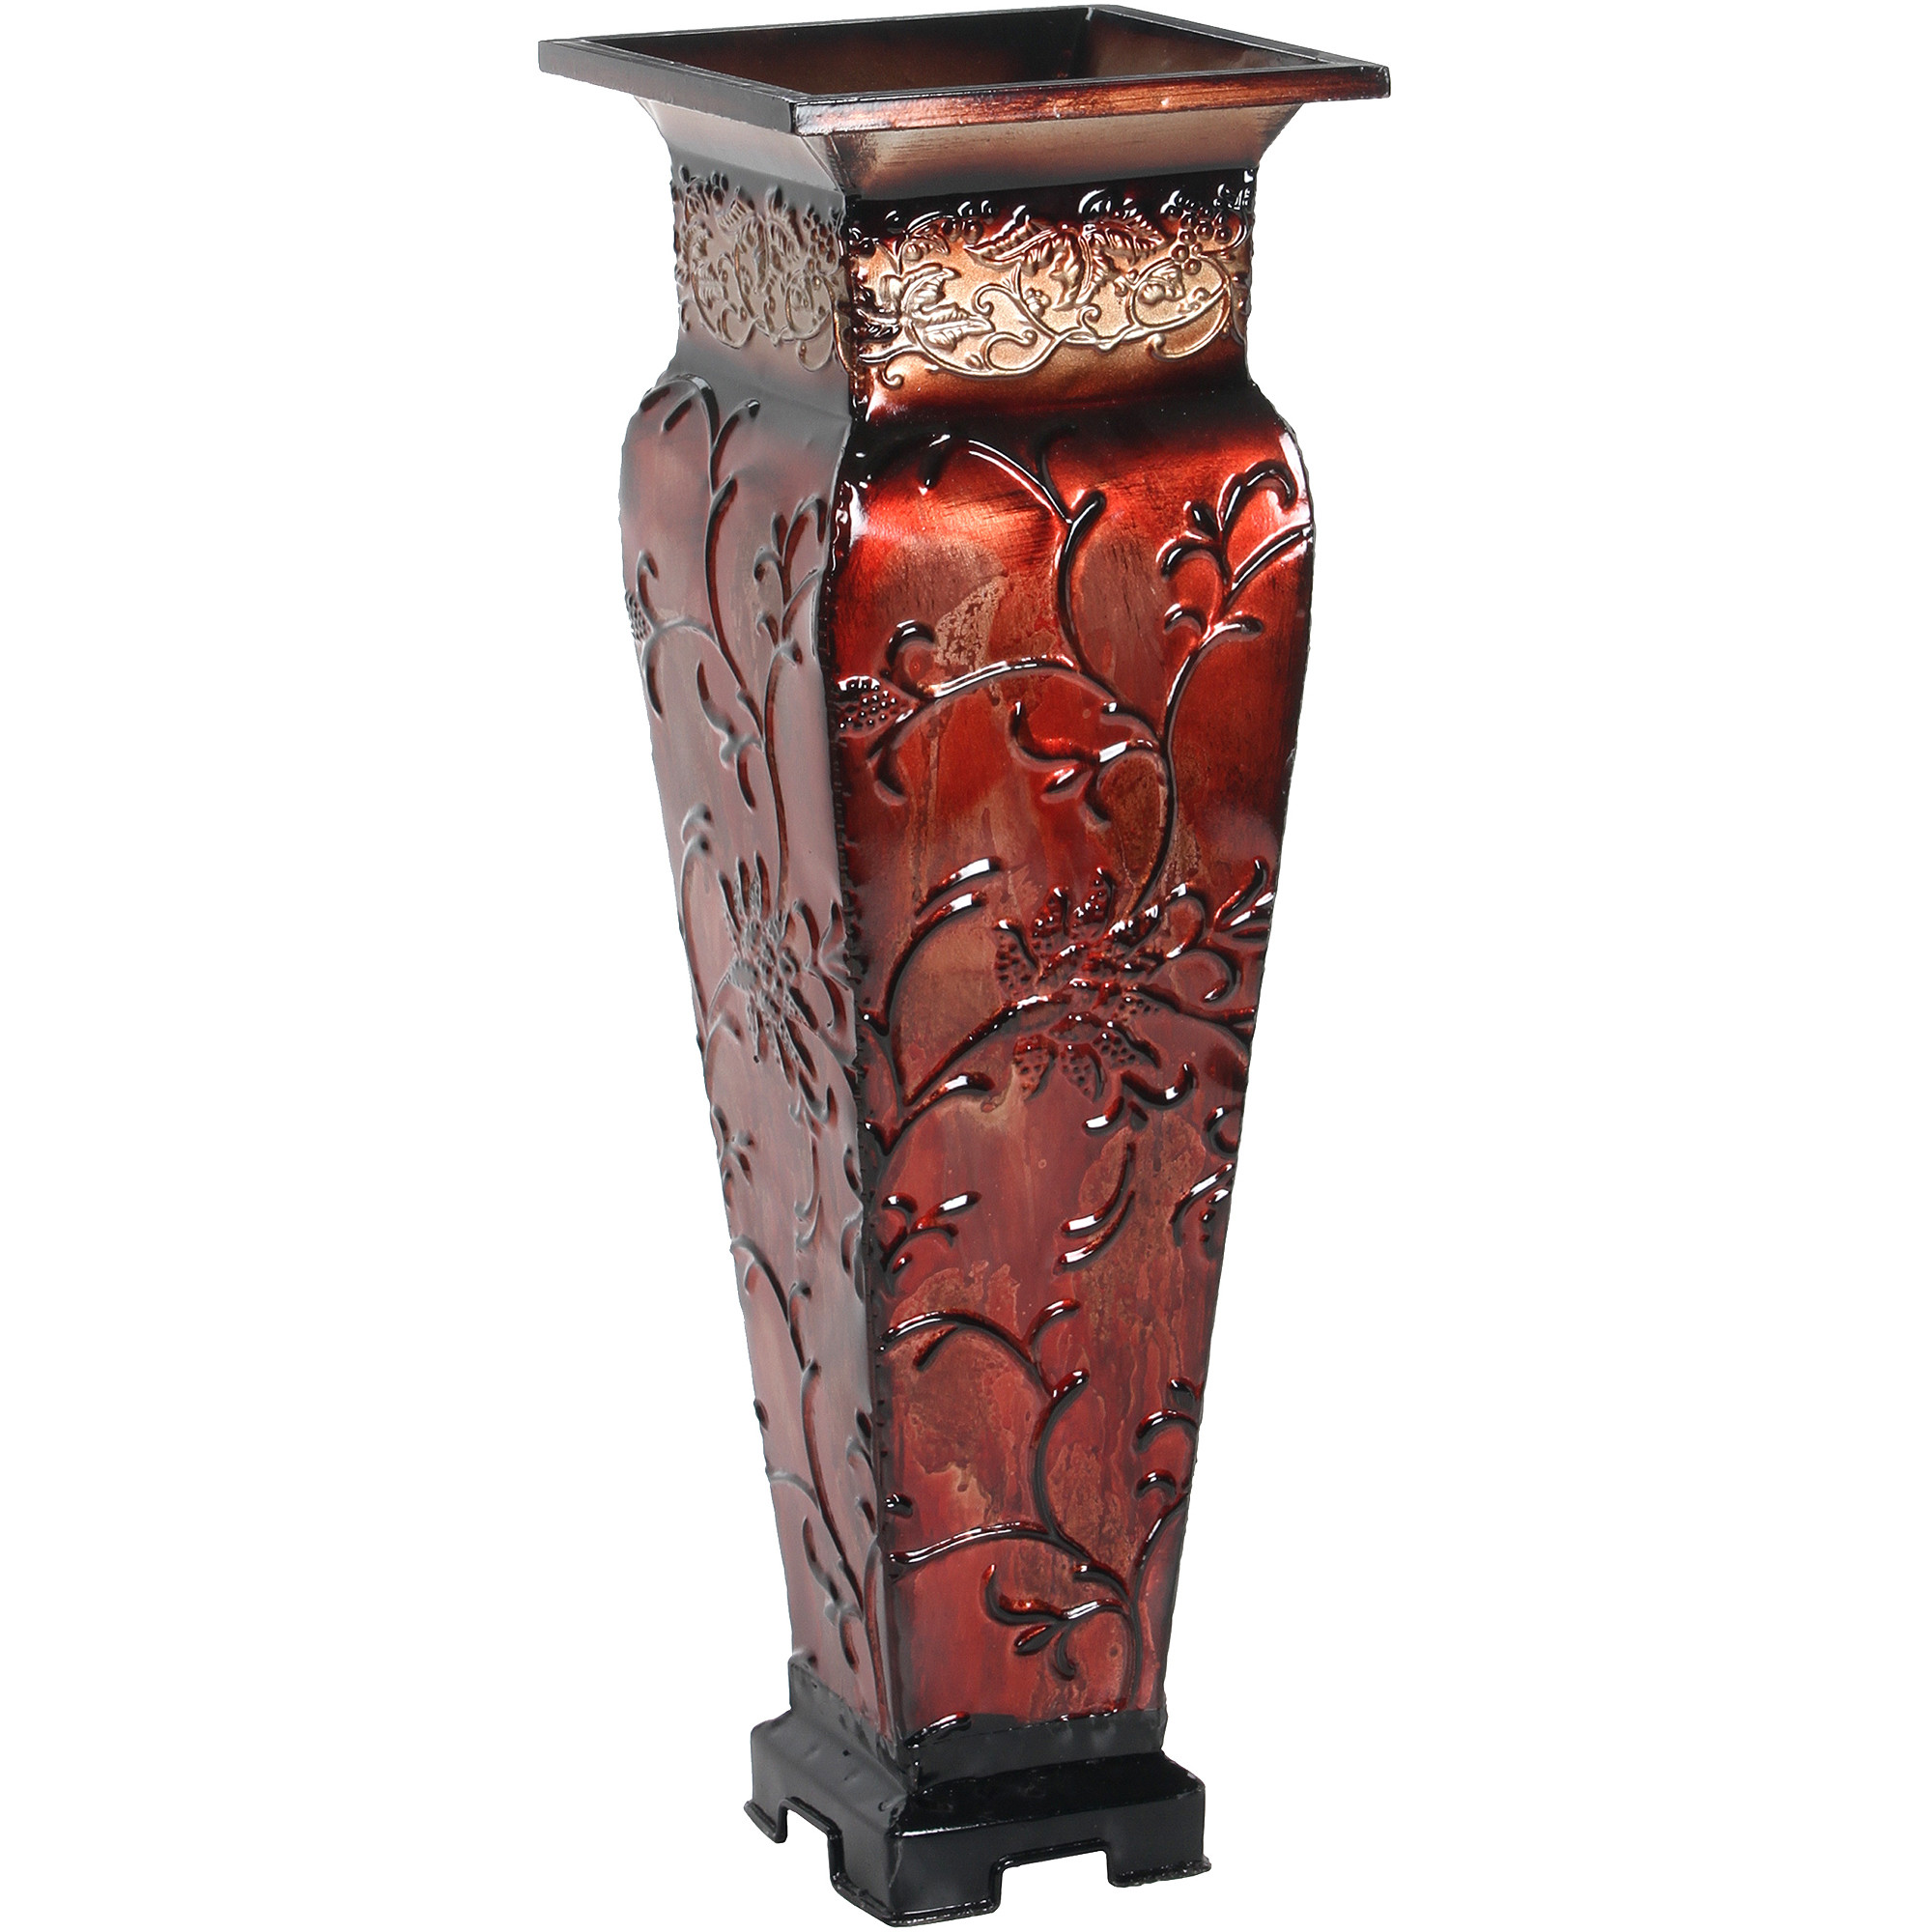 24 inch tall cylinder vases of ideas befitting extra large floor vases for home decor ideas also regarding befitting extra large floor vases for home decor ideas also extra large floor glass vases